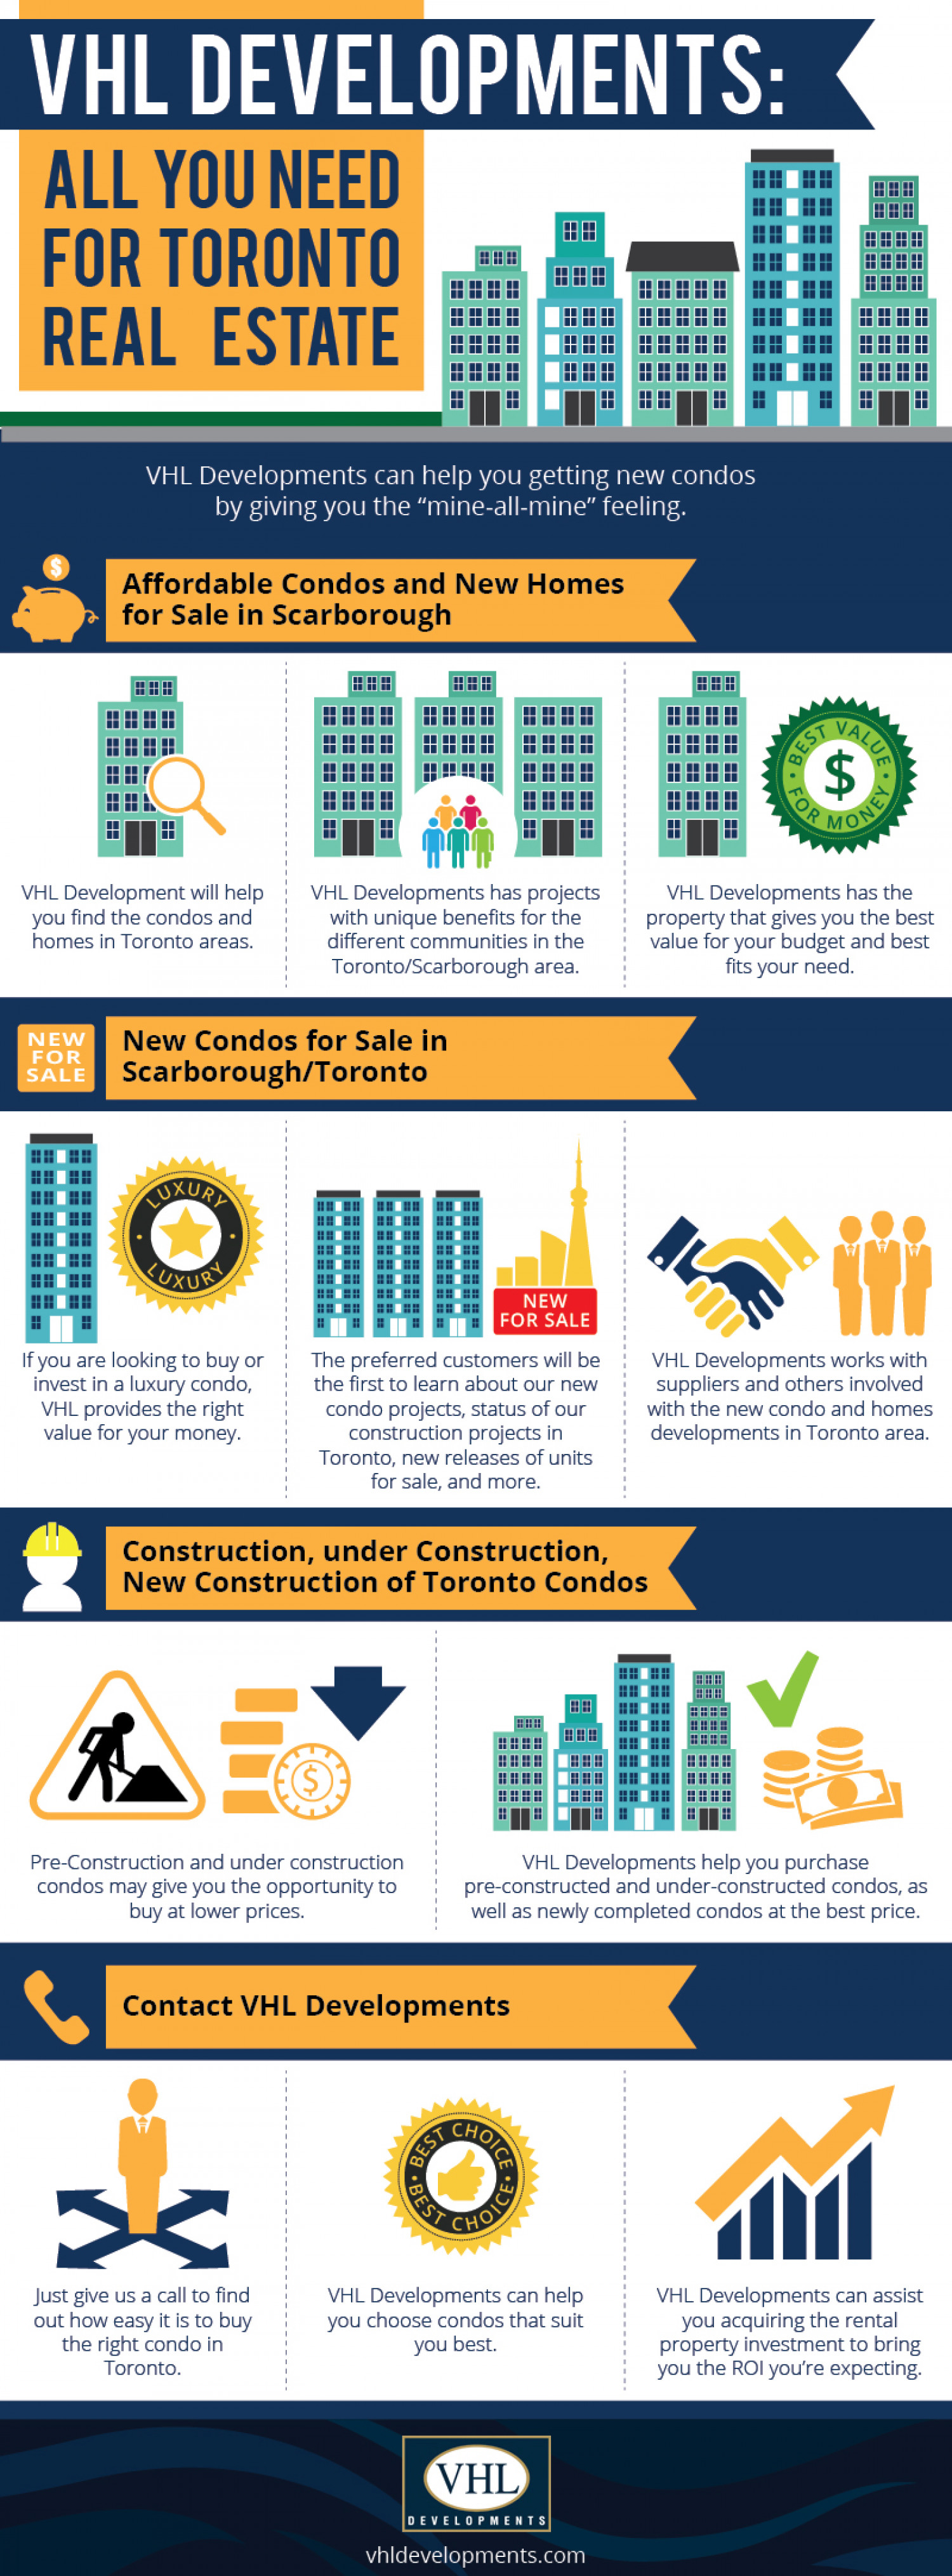 VHL Developments Inc. Infographic